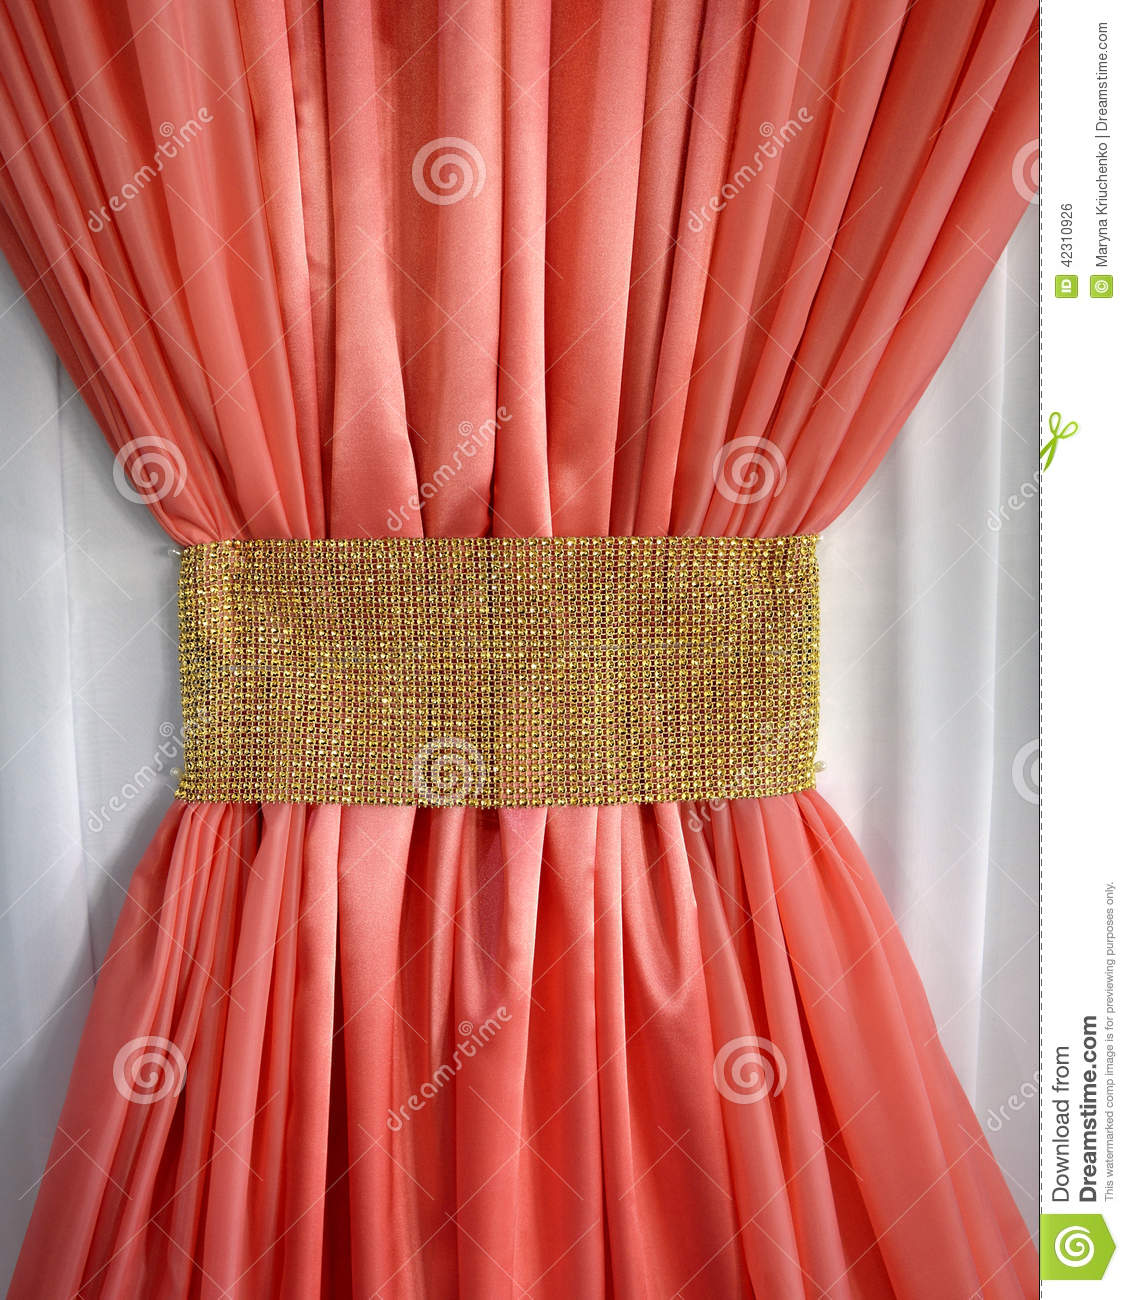 Bright coral ruffled curtain in the form of a bow gleaming gold belt ...